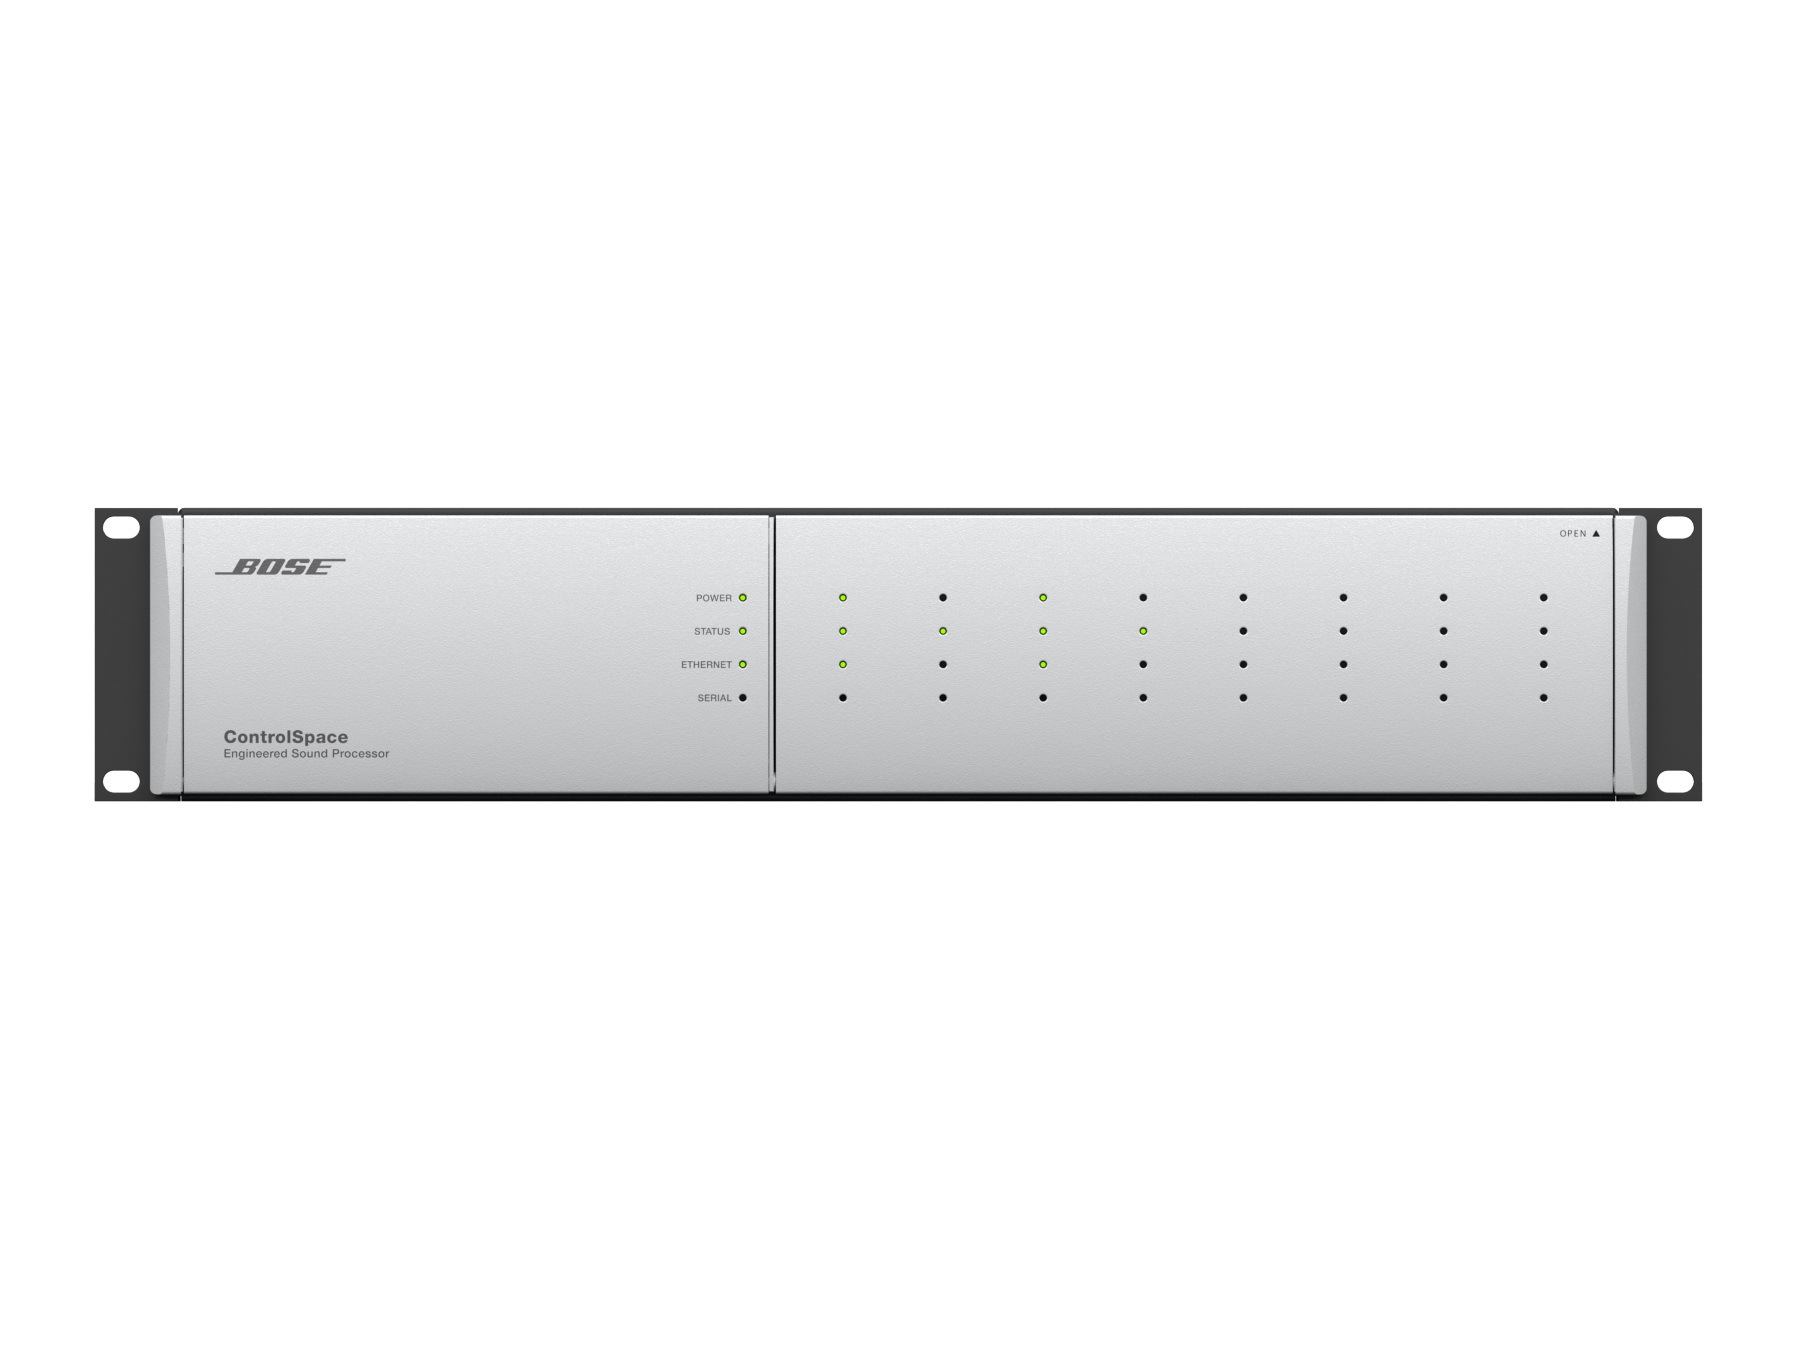 [] Dr. BOSE ESP-00 store opened audio processor for professional audio audio conference